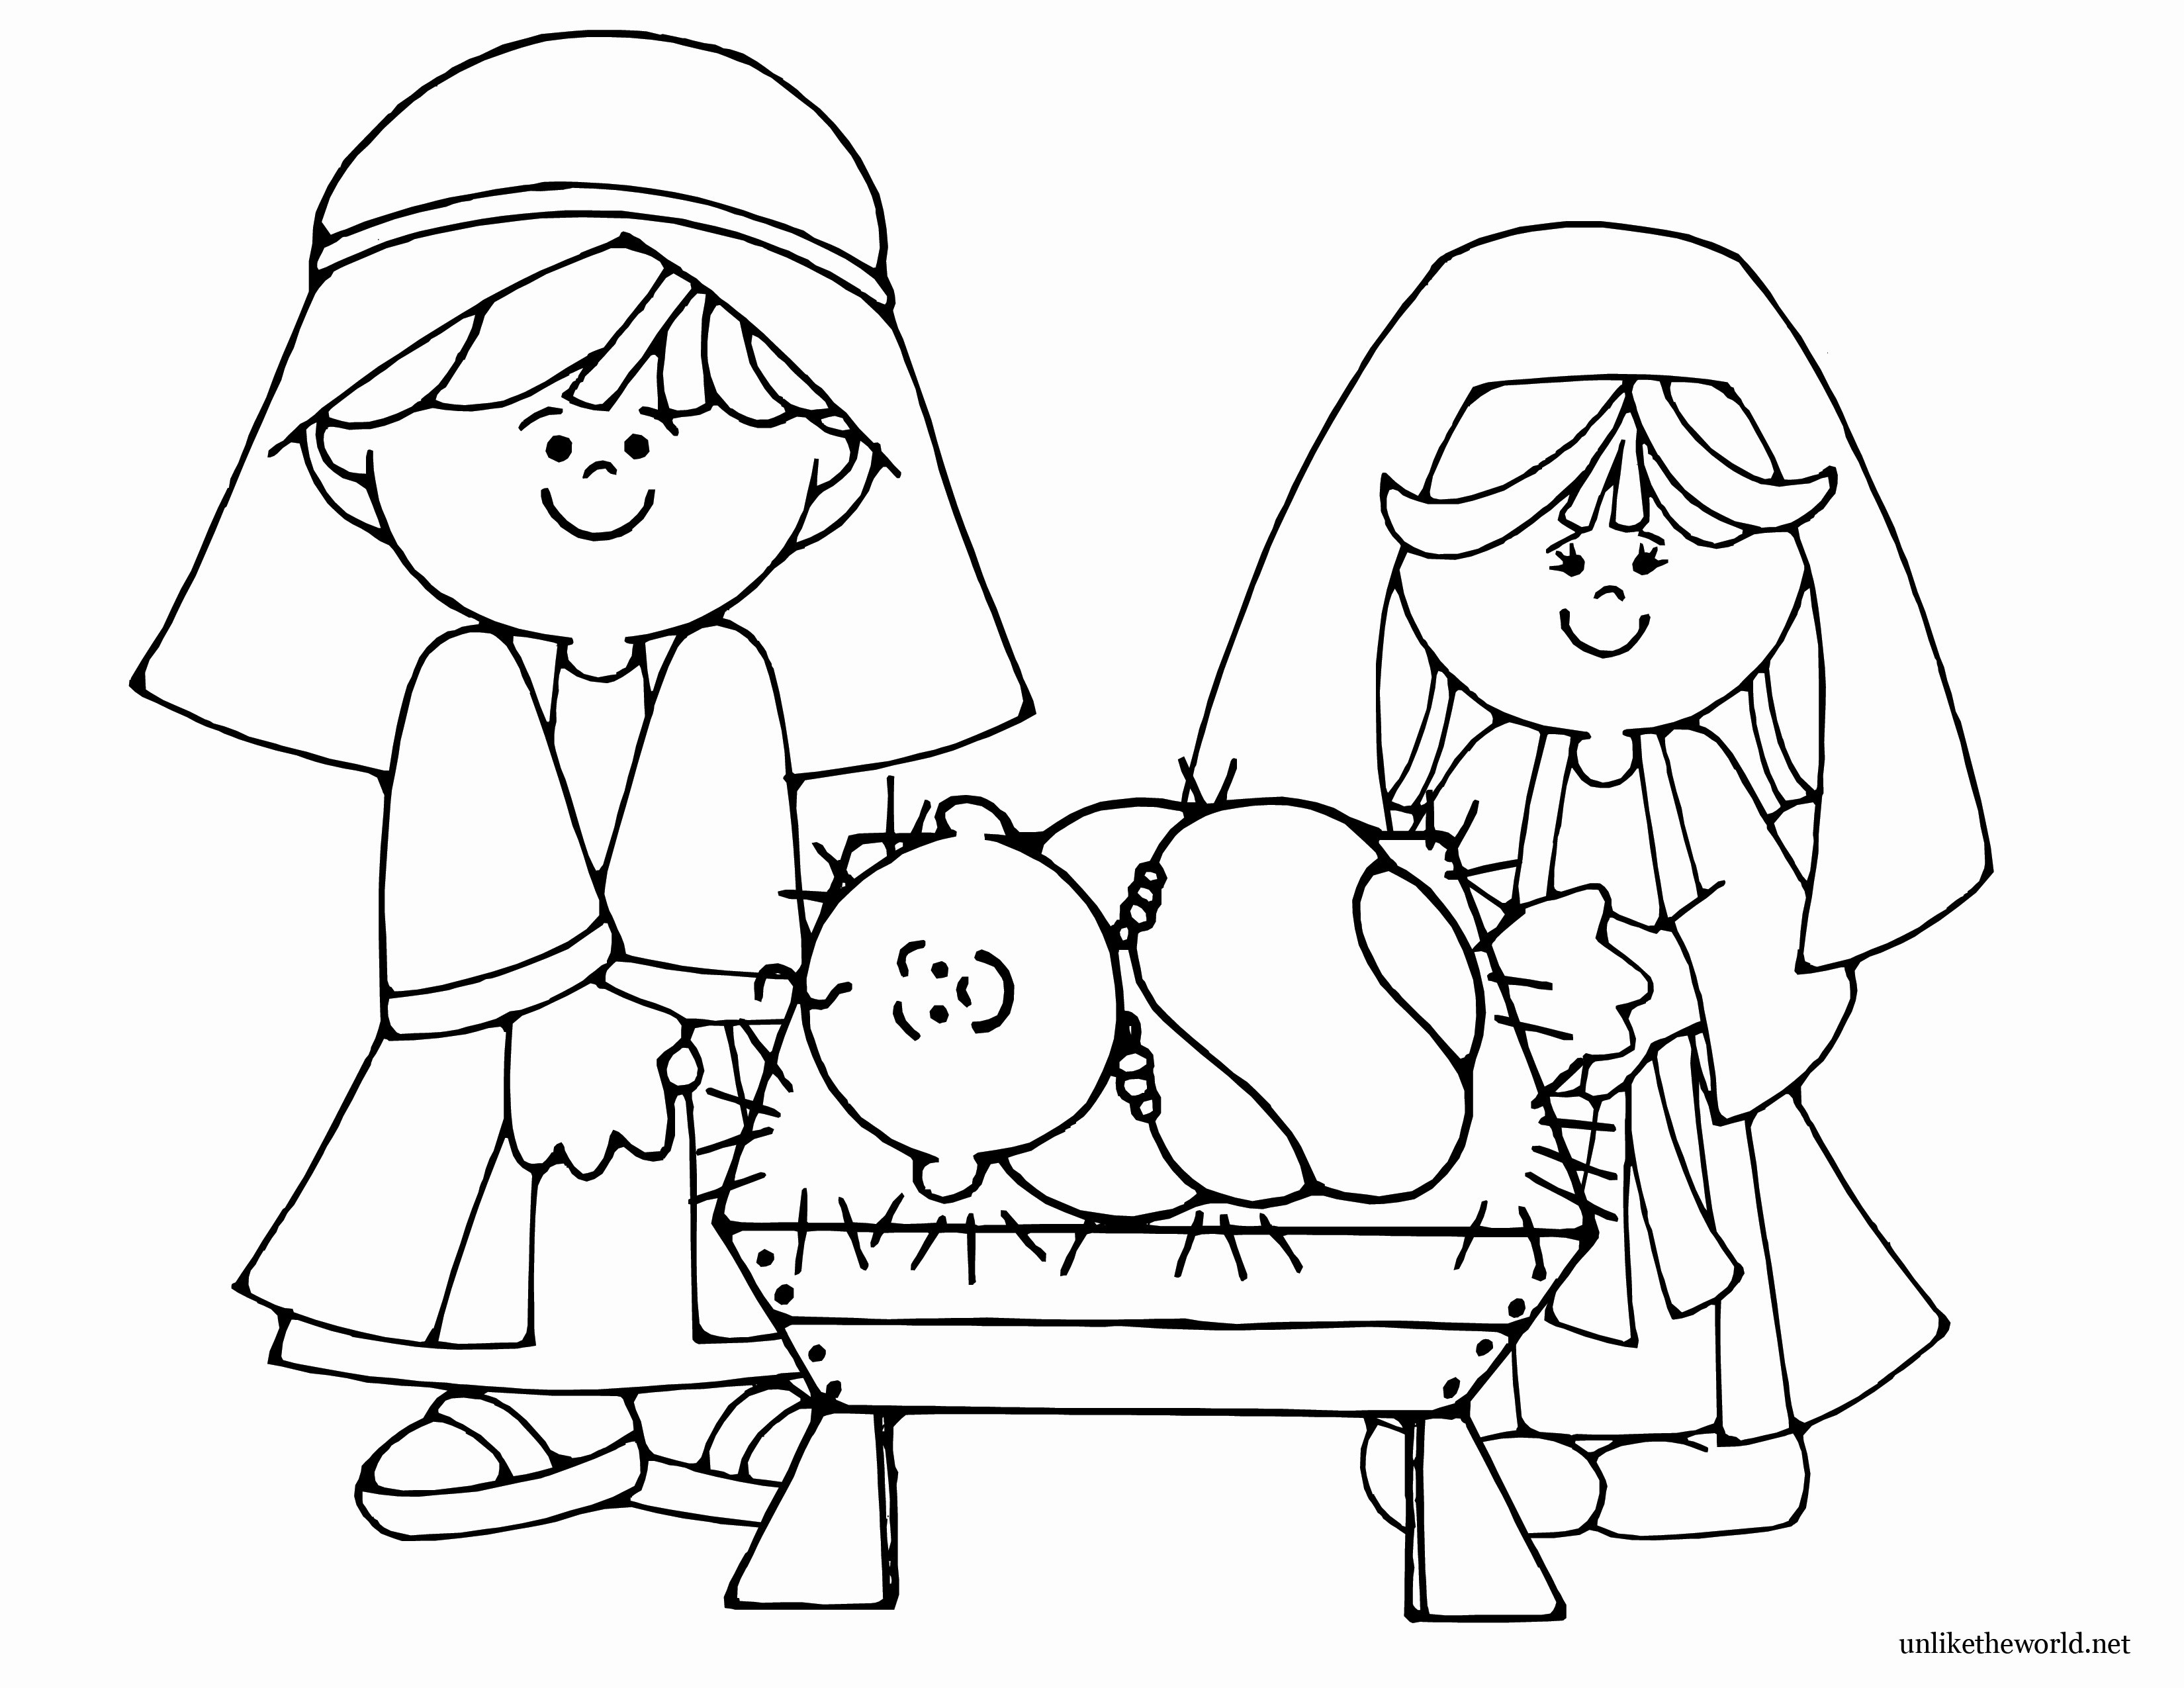 Christmas Coloring Nativity With Pages DIY Decor